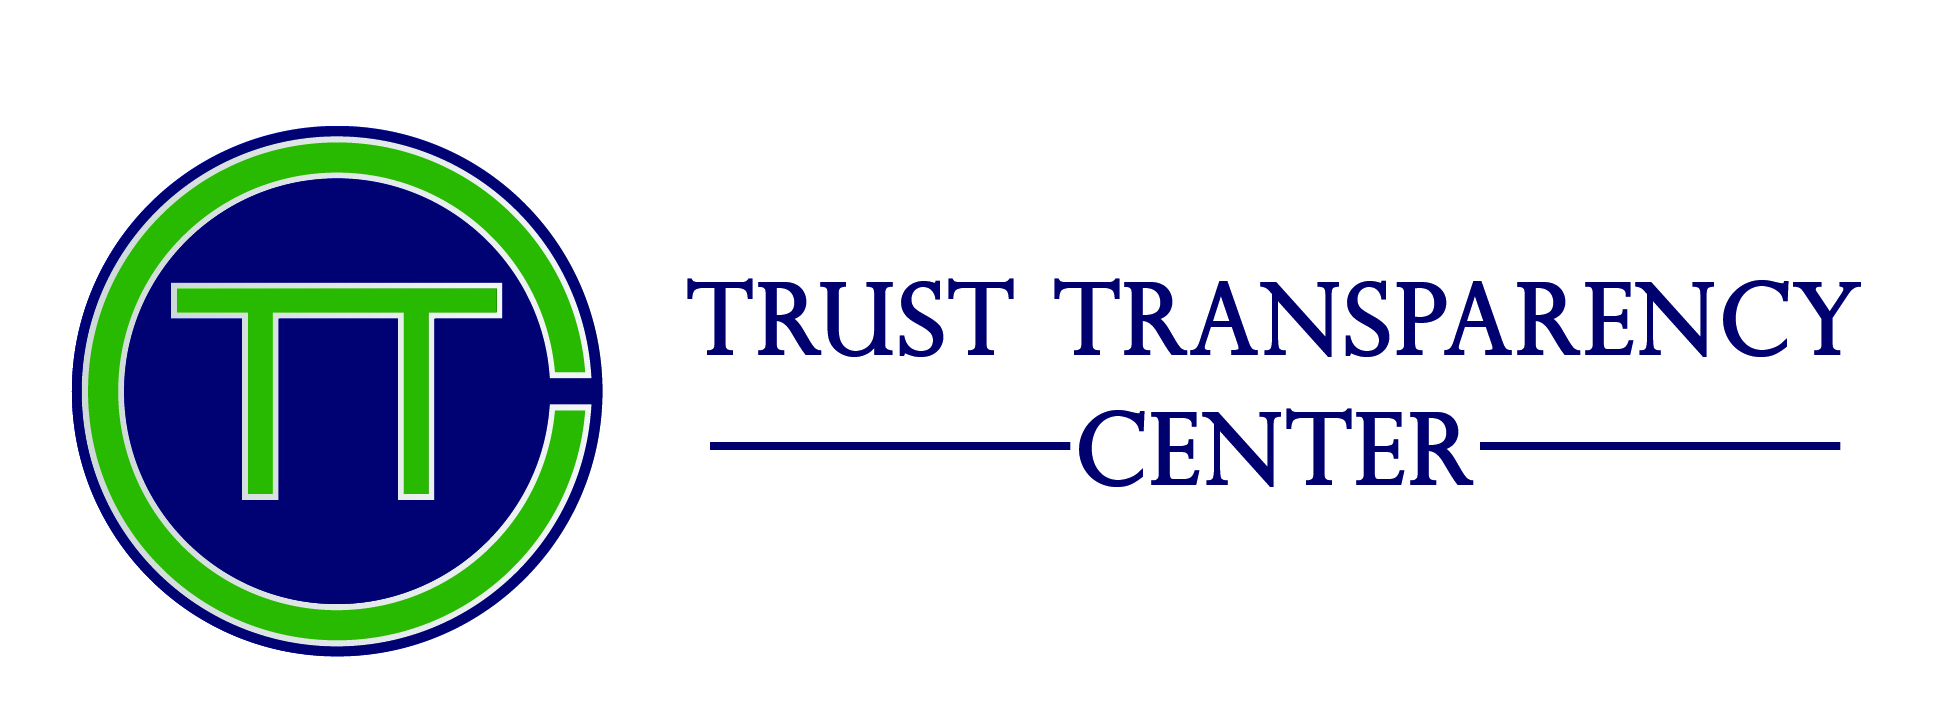 Trust Transparency Center